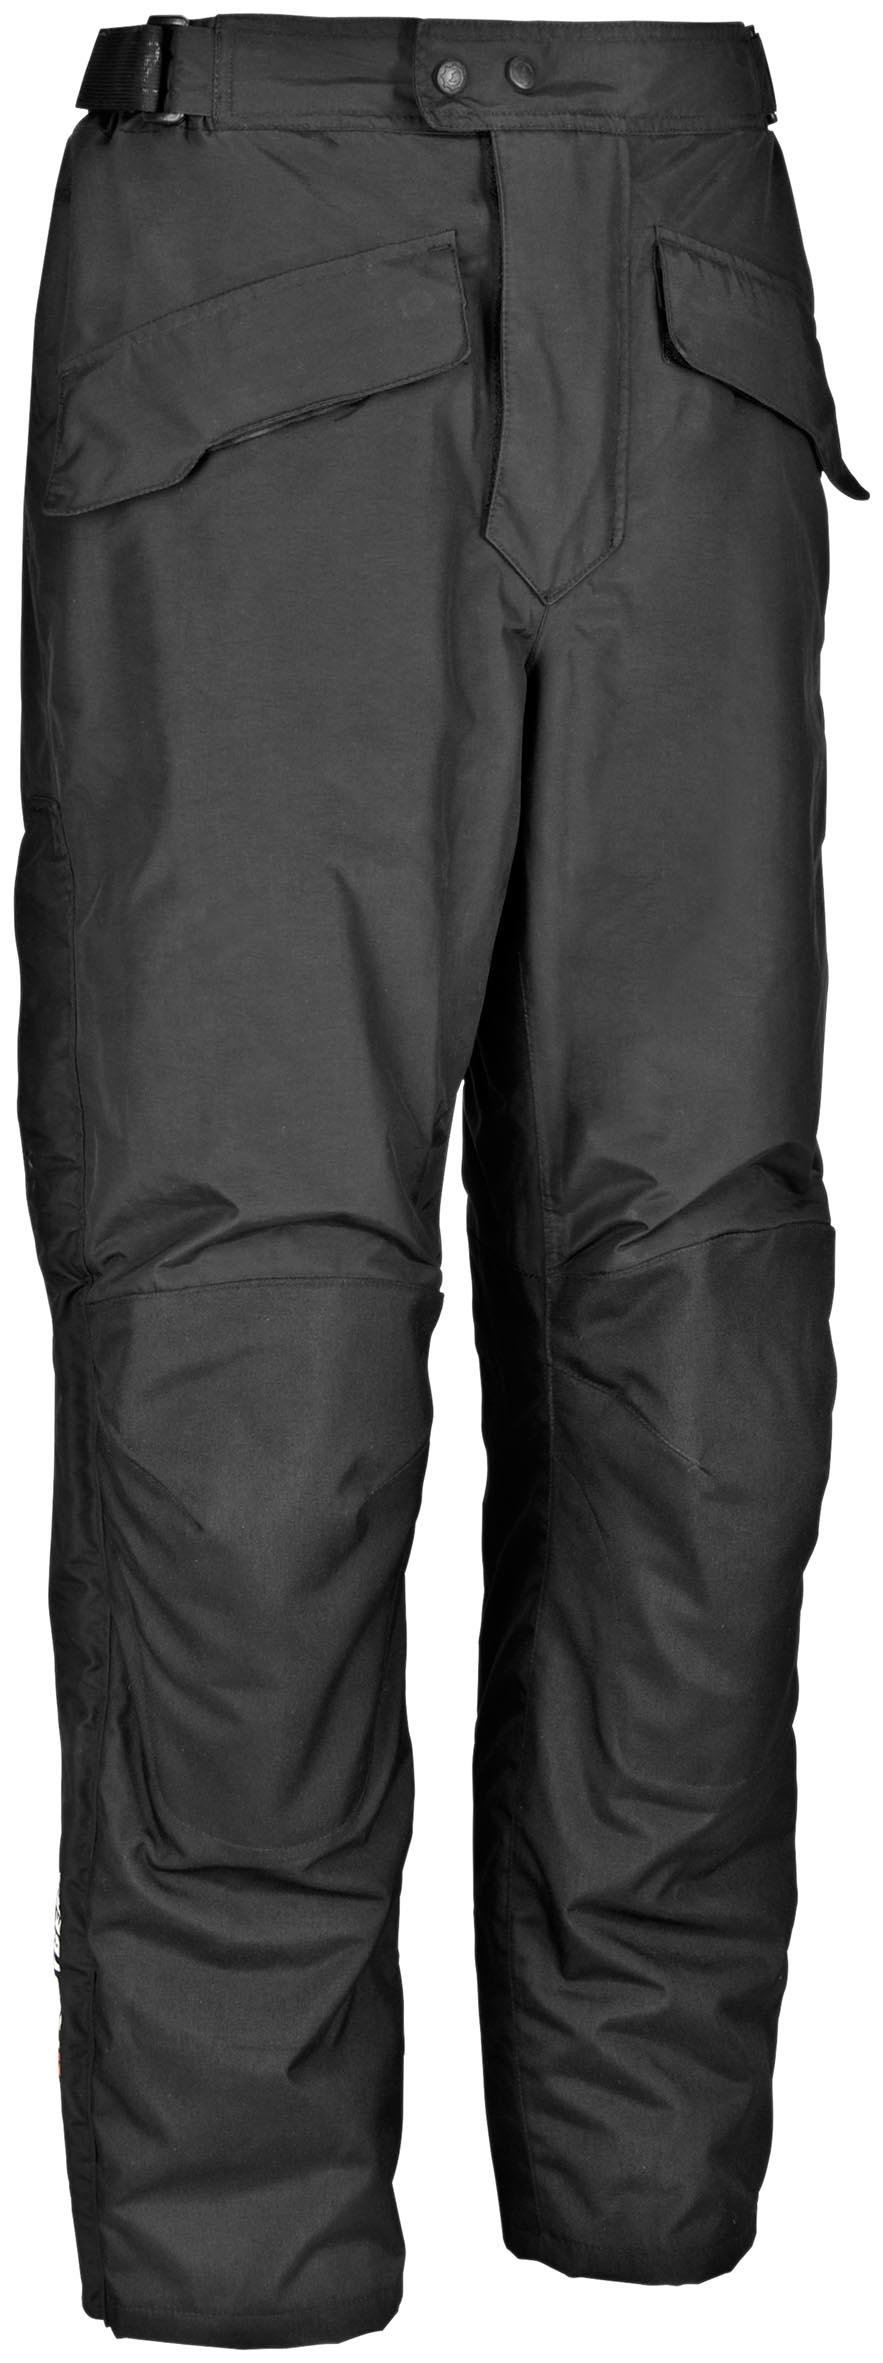 FirstGear HT Overpants Shell Men's Textile Sports Bike Racing Motorcycle Pants - Black / Tall / Size 38